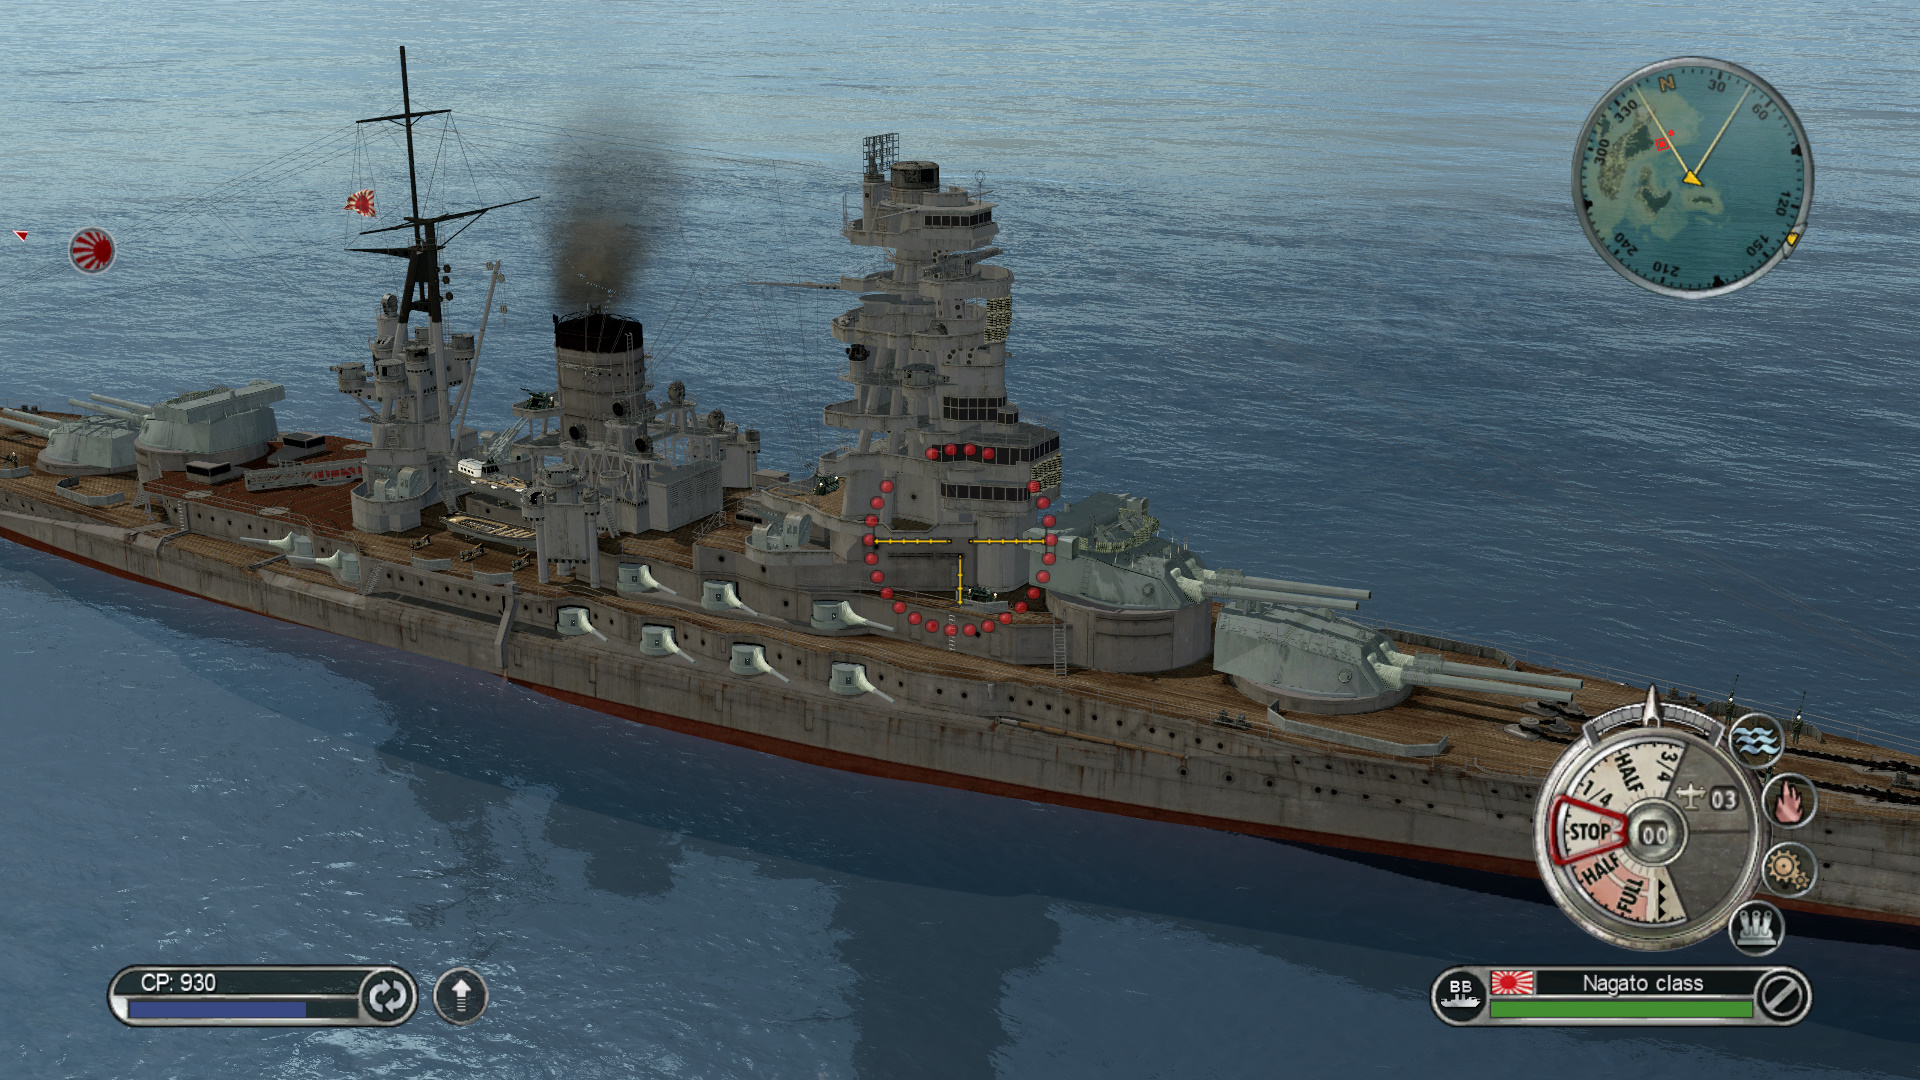 Introducing the Nagato-class B...